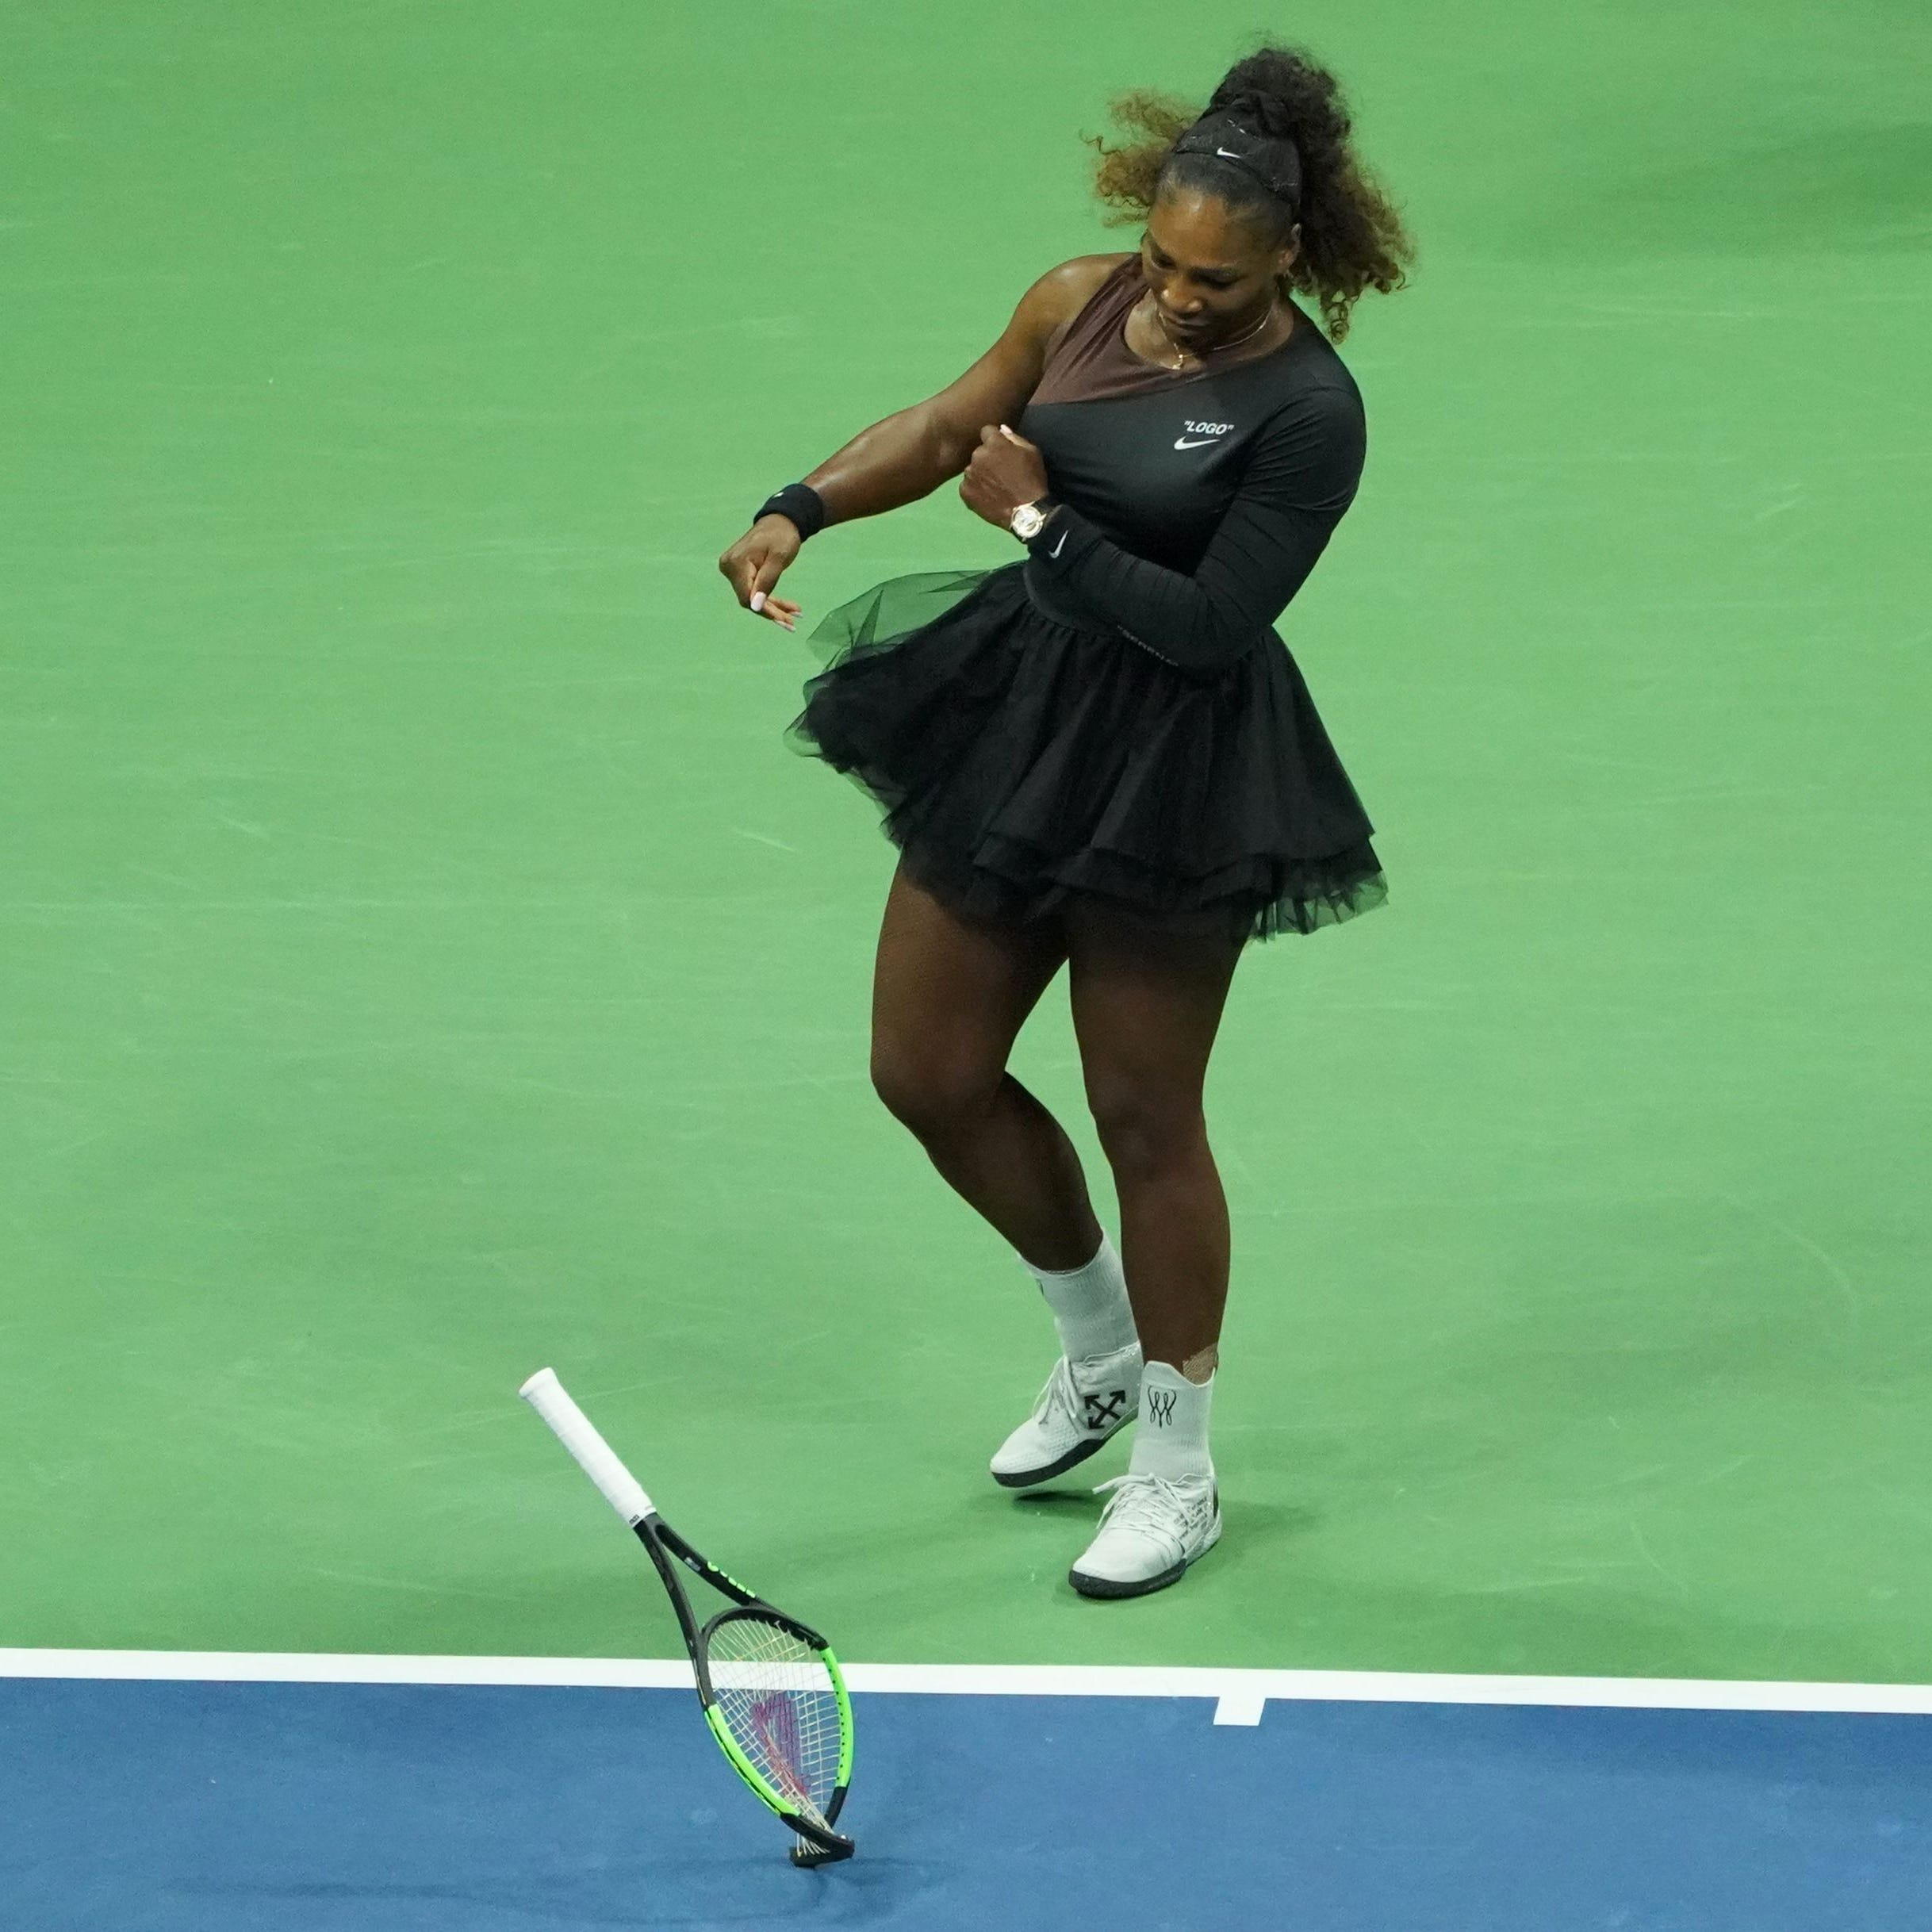 Show put on by Serena Williams has no place in a game of honor